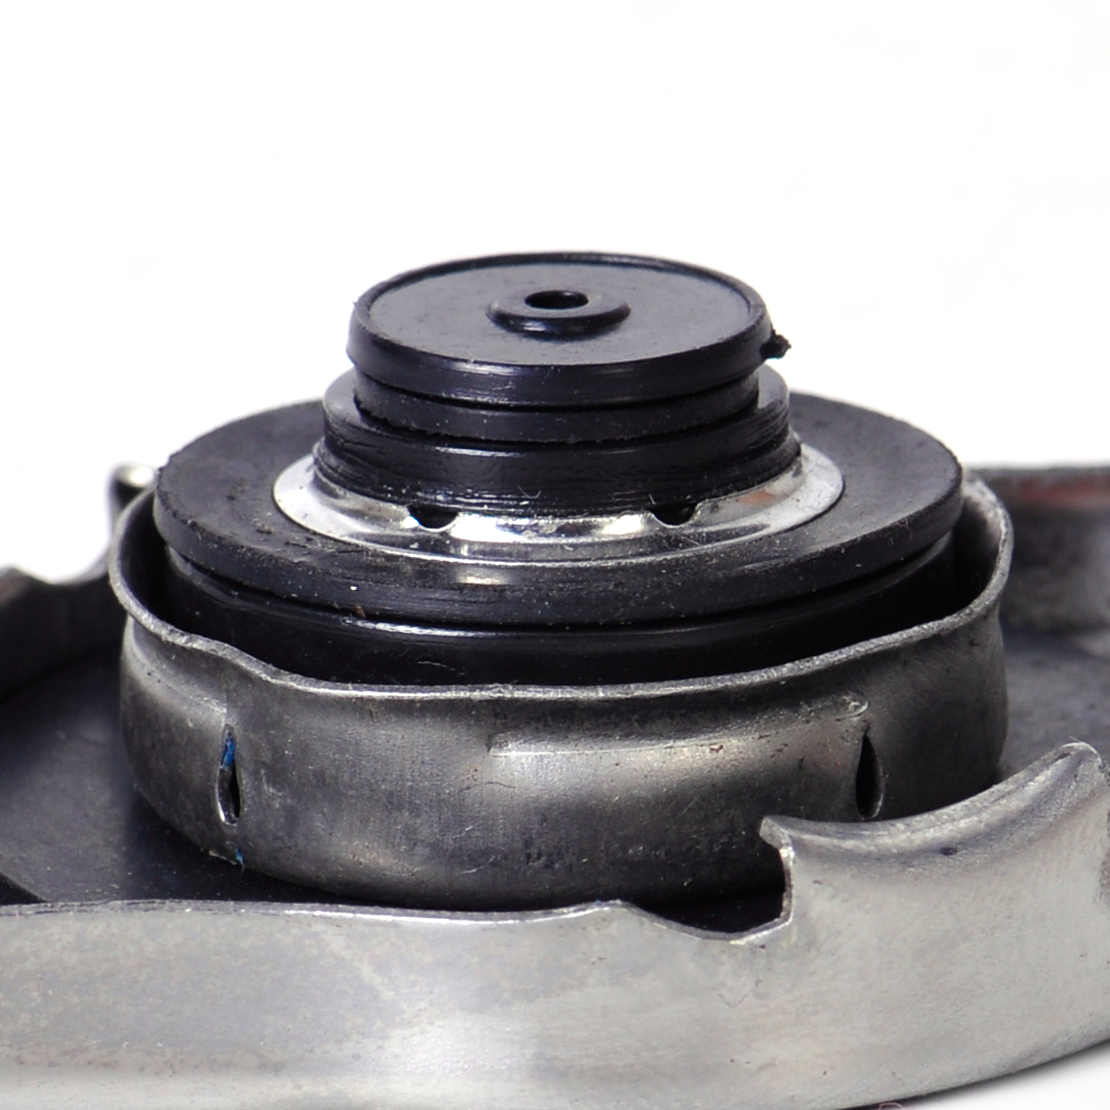 Beler חדש 1Pc רדיאטור כובע מכסה 19045-PAA-A01 19045PAAA01 KH-C31 Fit עבור הונדה אקורד 1994 1995 1996 1997 עבור אקורה CL 1997 1998